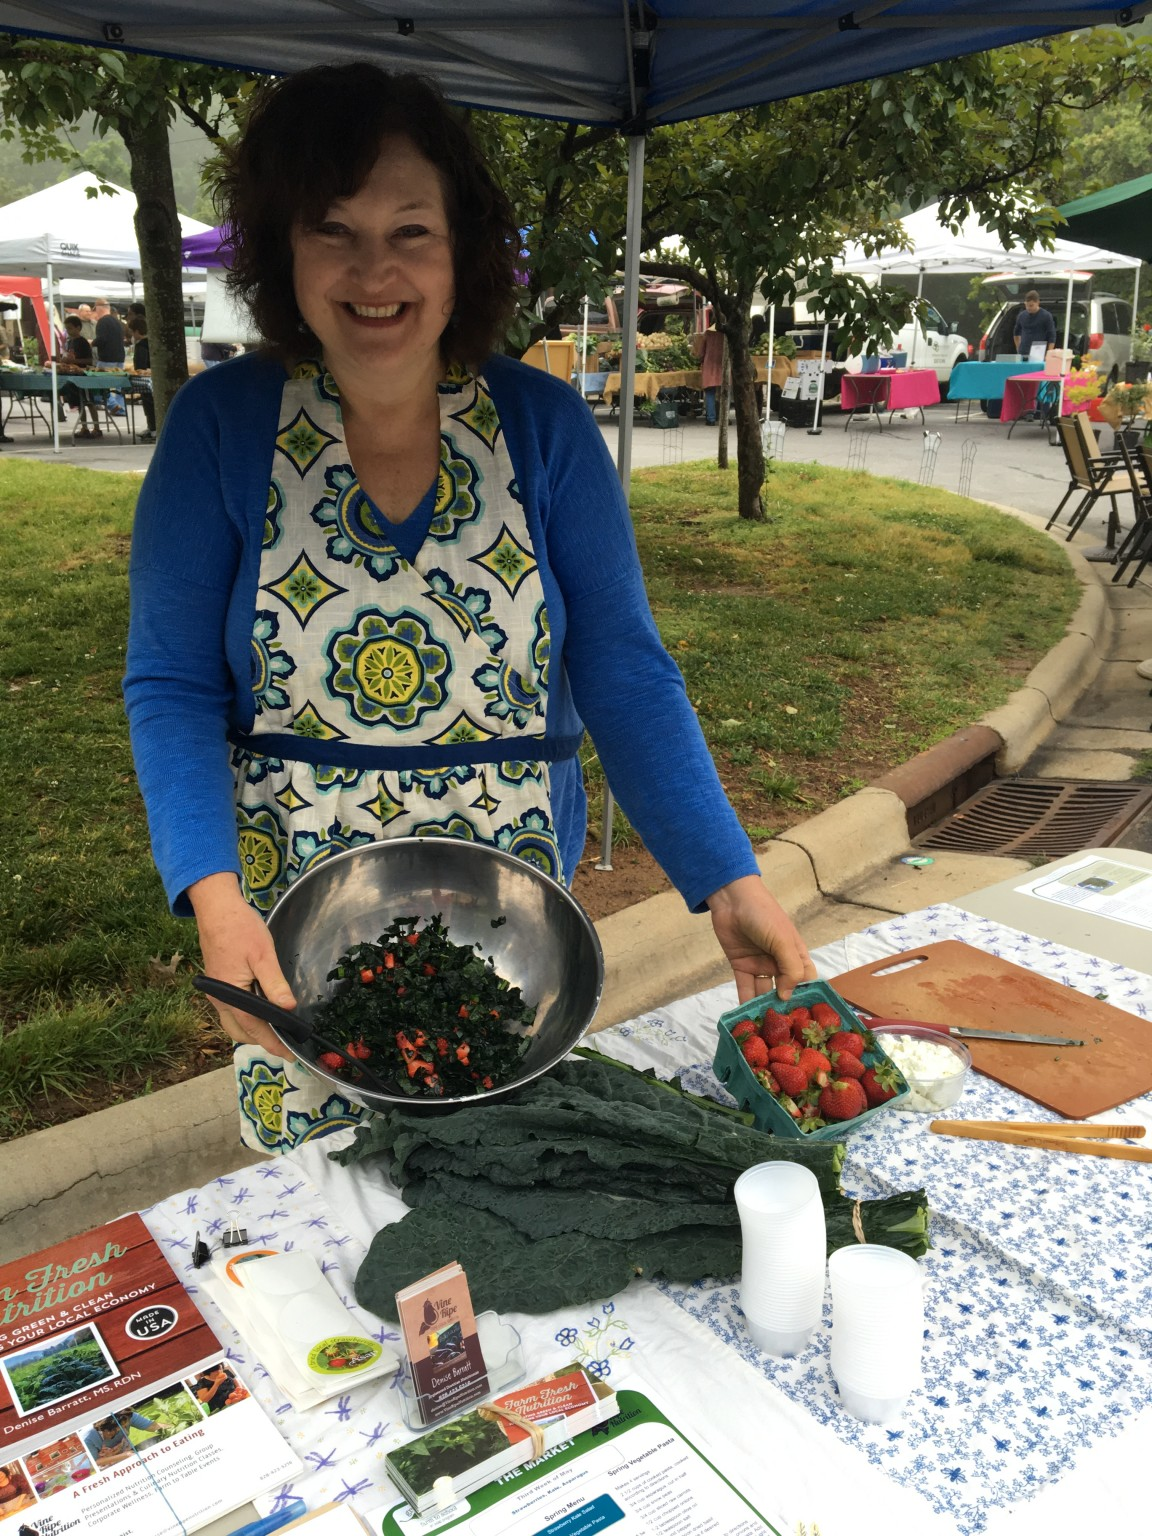 Denise at the farmers' market